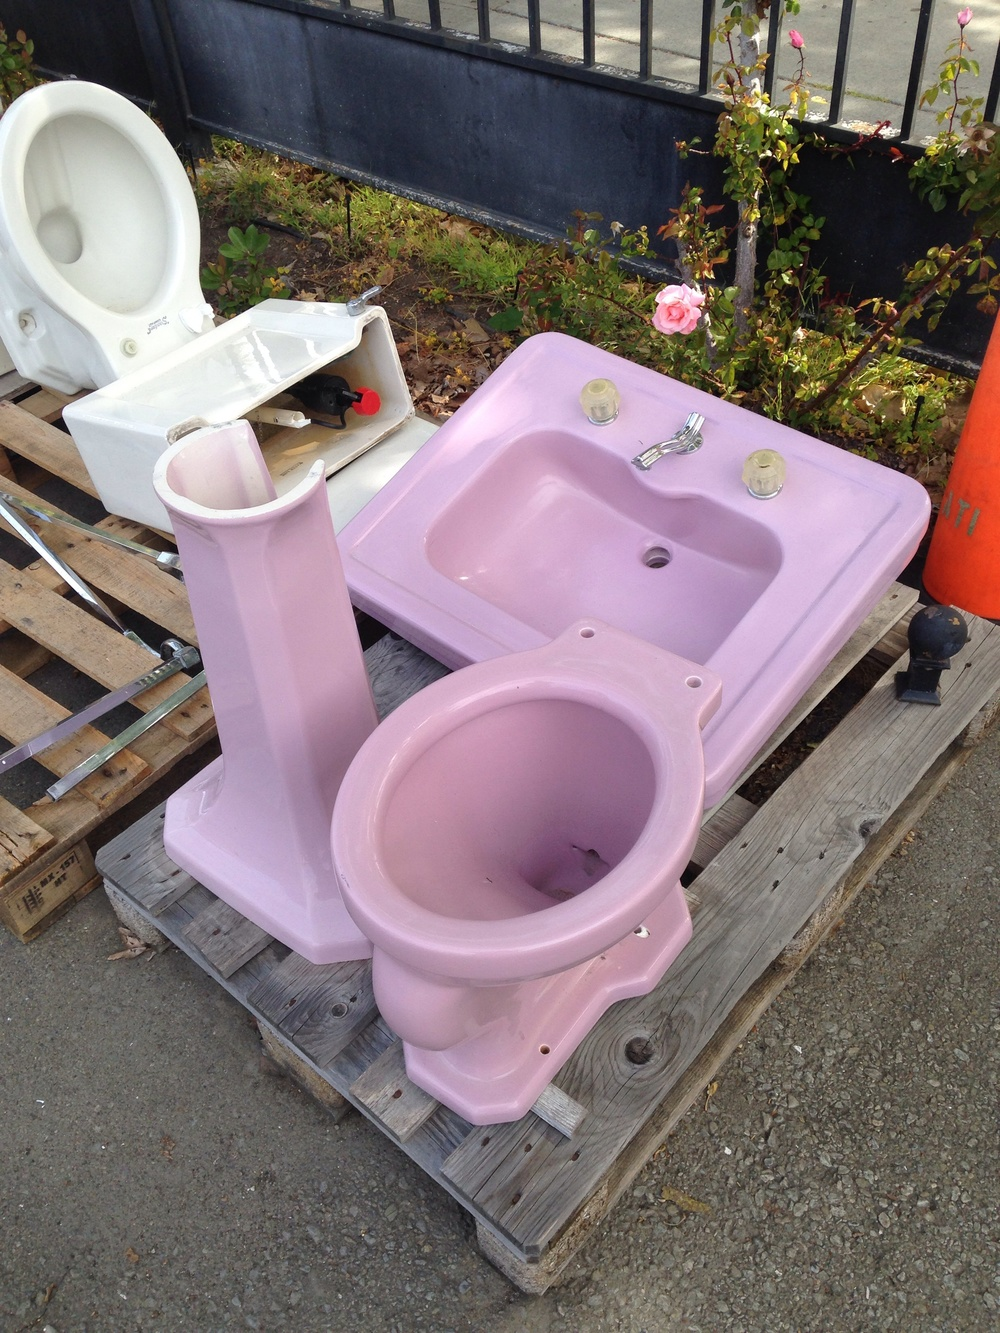 Lavender bath set circa '28-30s. '28 is the first year for color and wall tank toilets were phased out sometime in the 30s I would guess. The toilet would have a brass tube that comes out the back and curves up into a 5 gal. tank bolted to the wall.